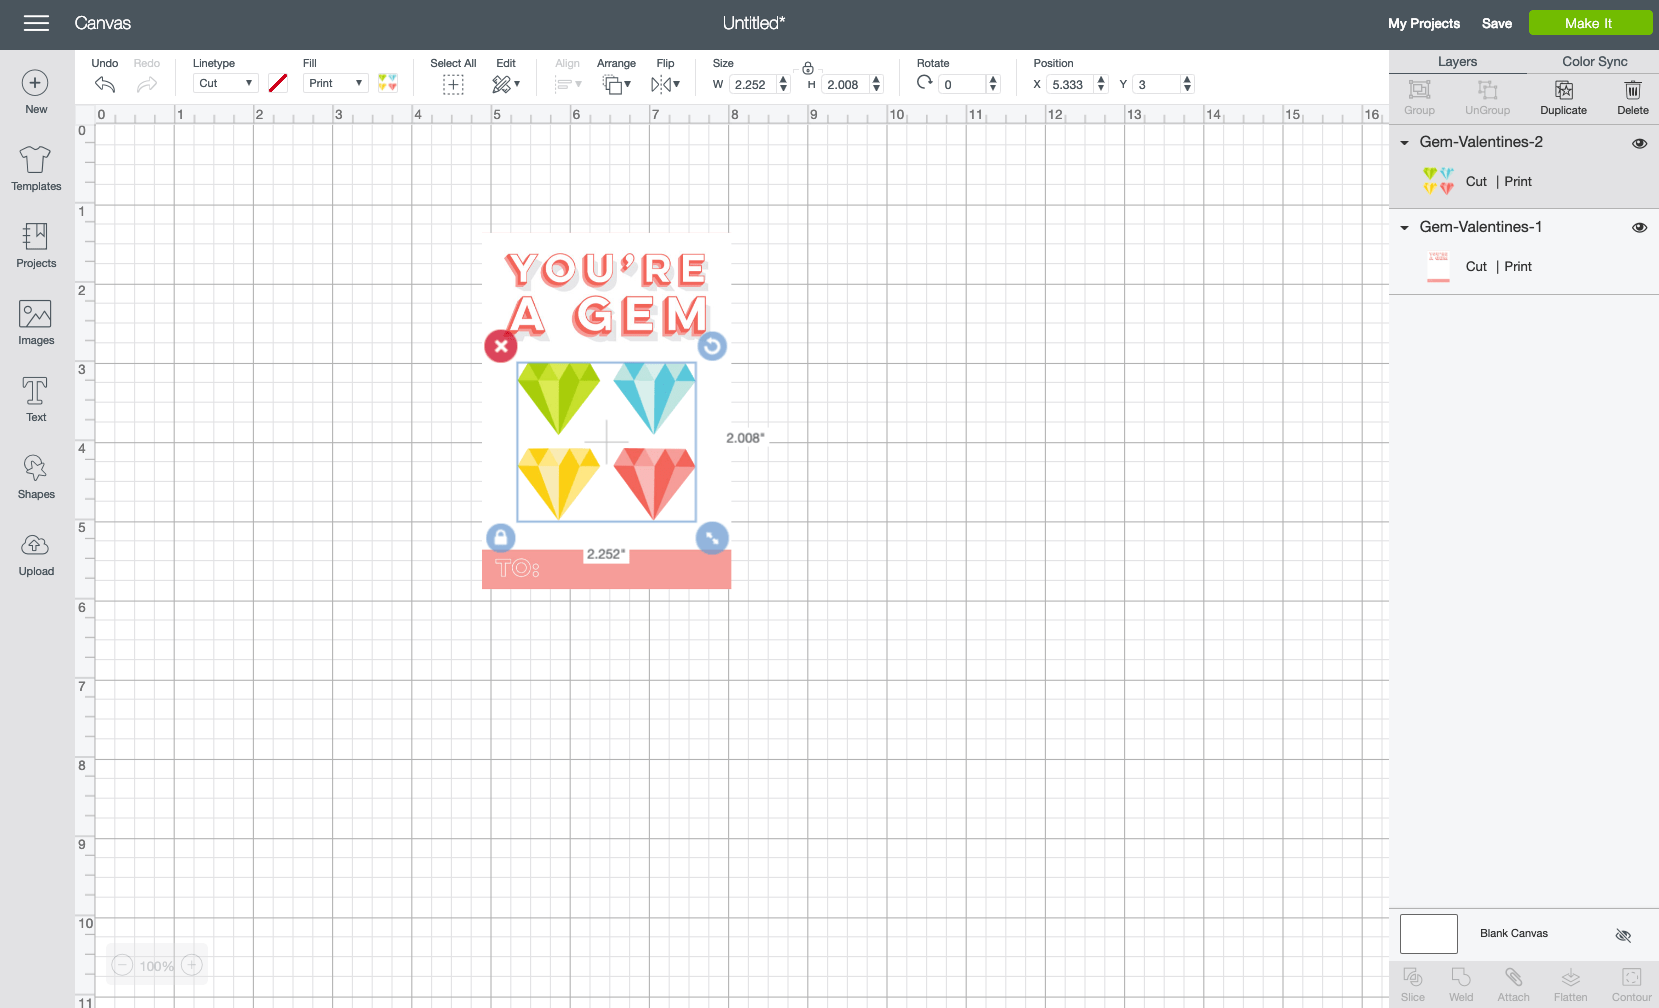 Then layer the gems on top of the card. You can use the Align tools in the Edit Toolbar at the top to center them.